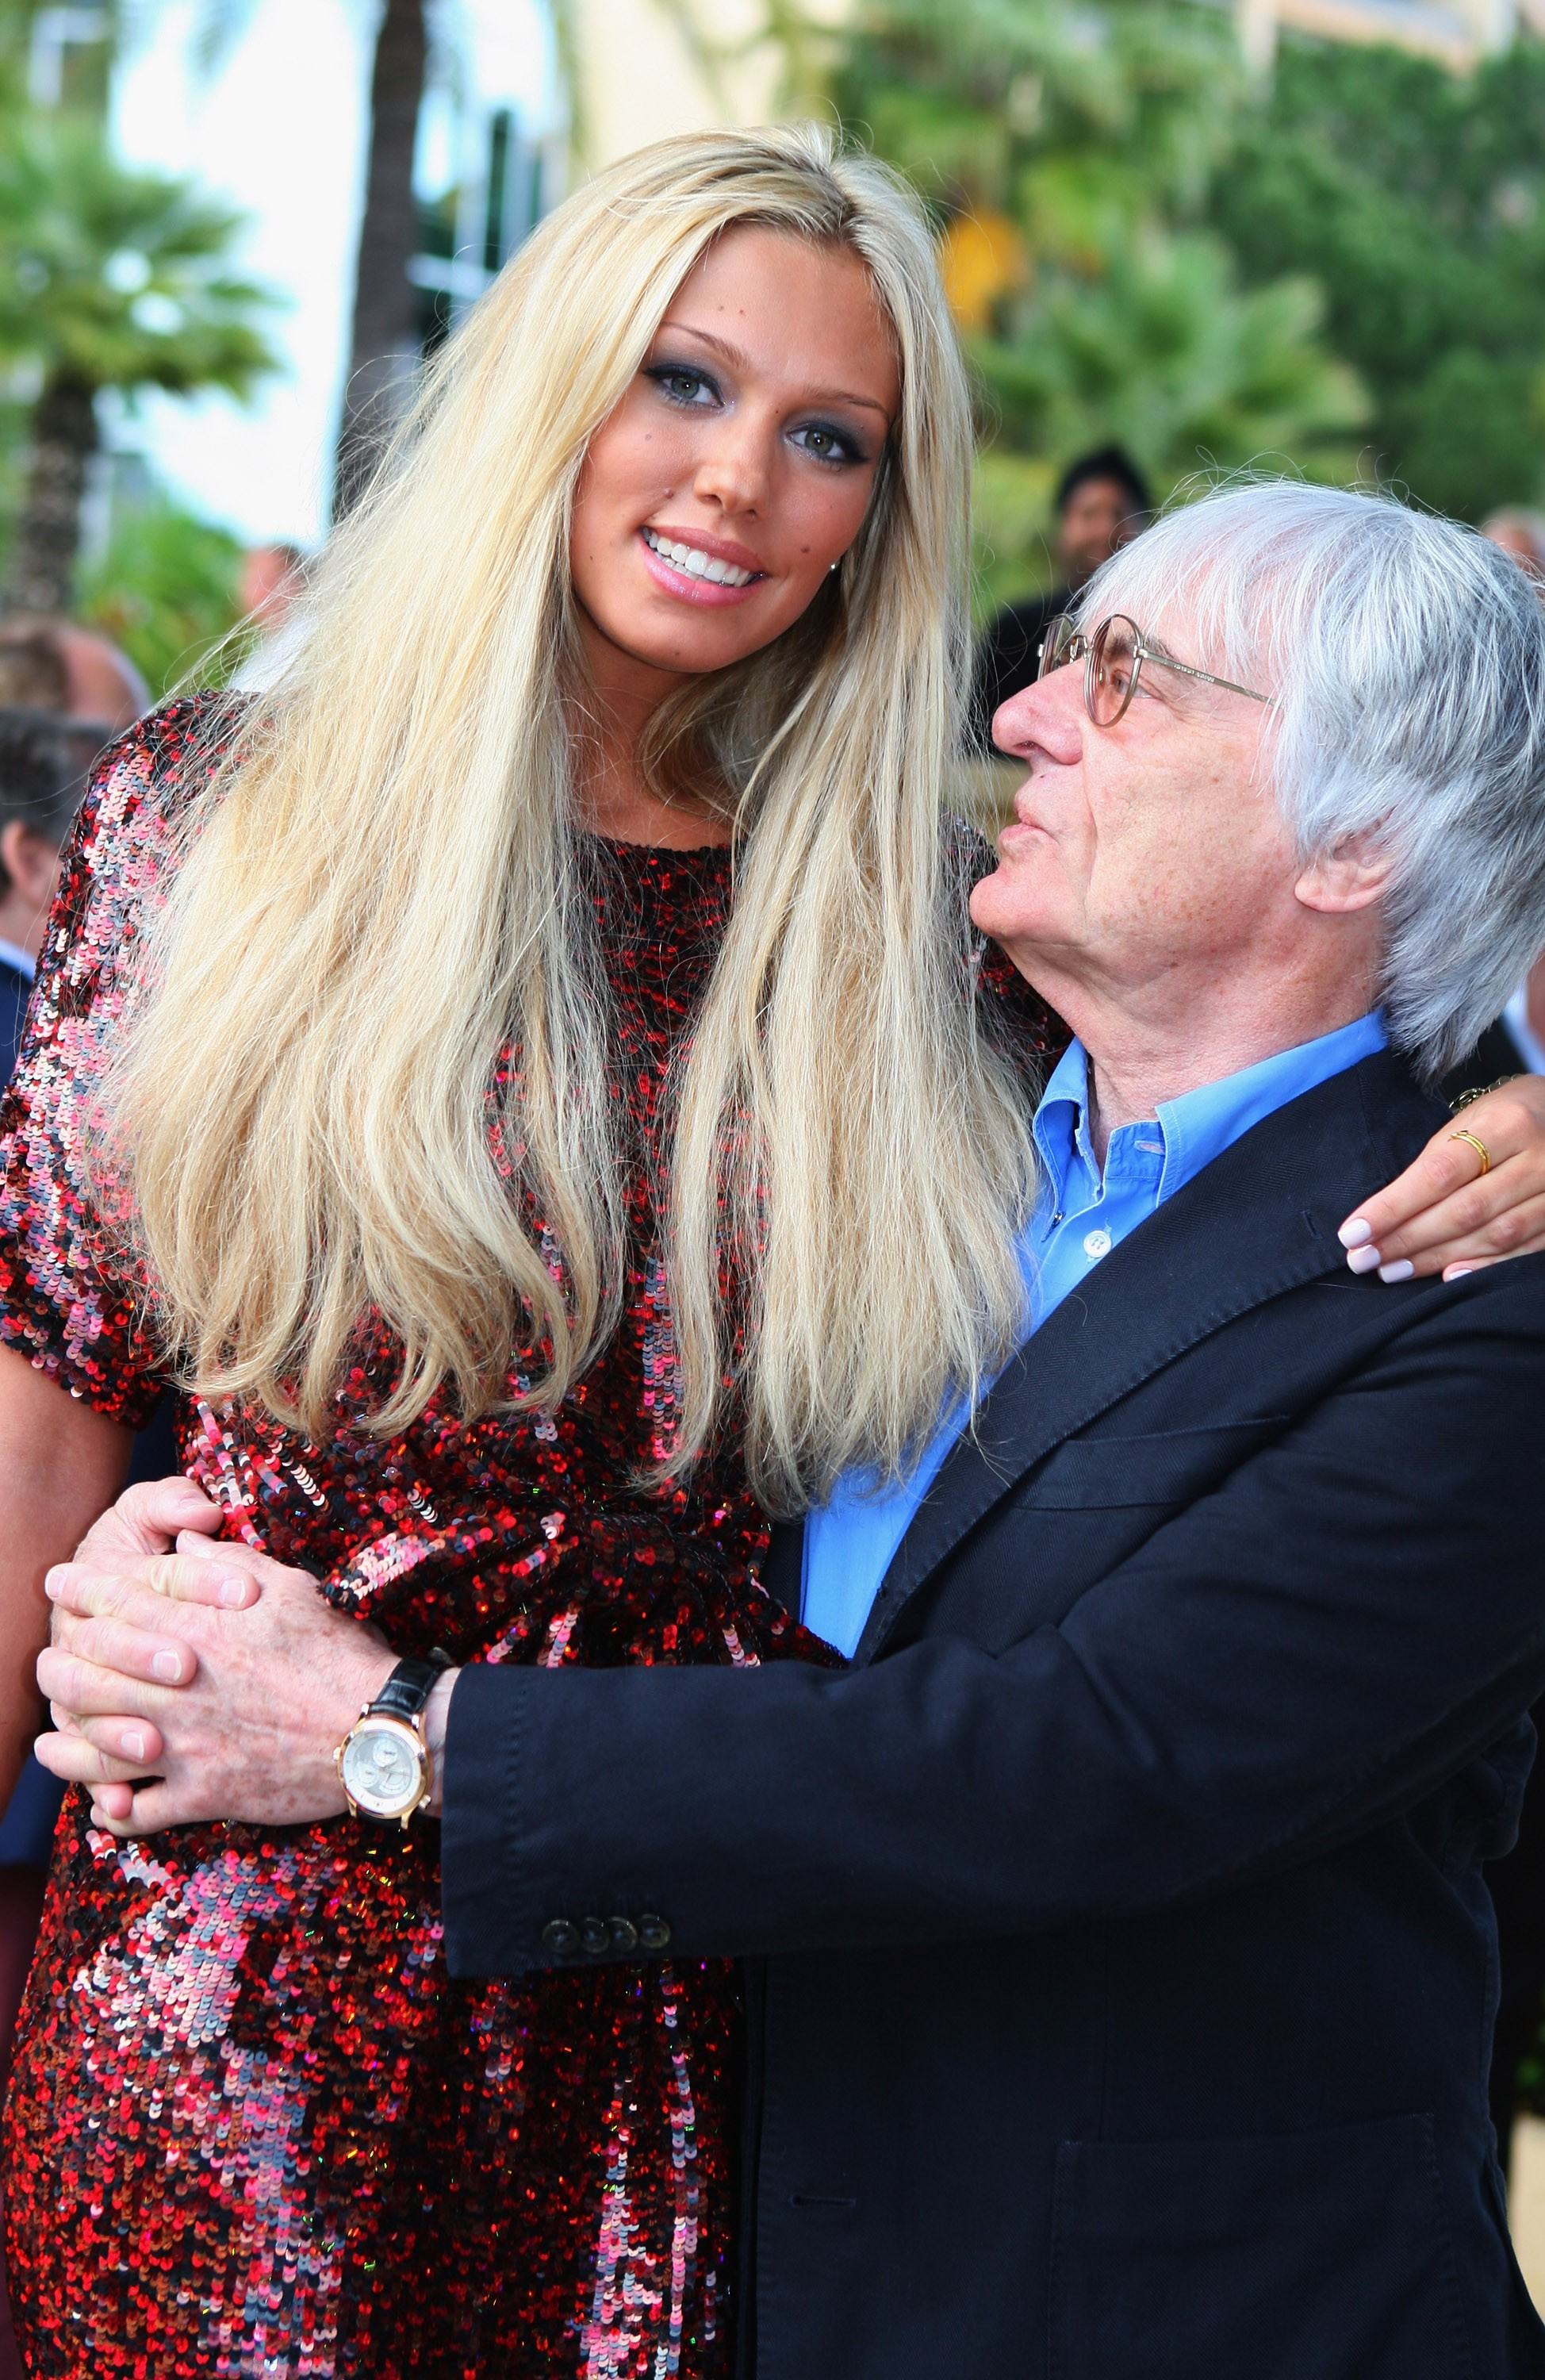 Bernie Ecclestone com a filha Petra (Foto: Getty Images/ Mark Thompson)